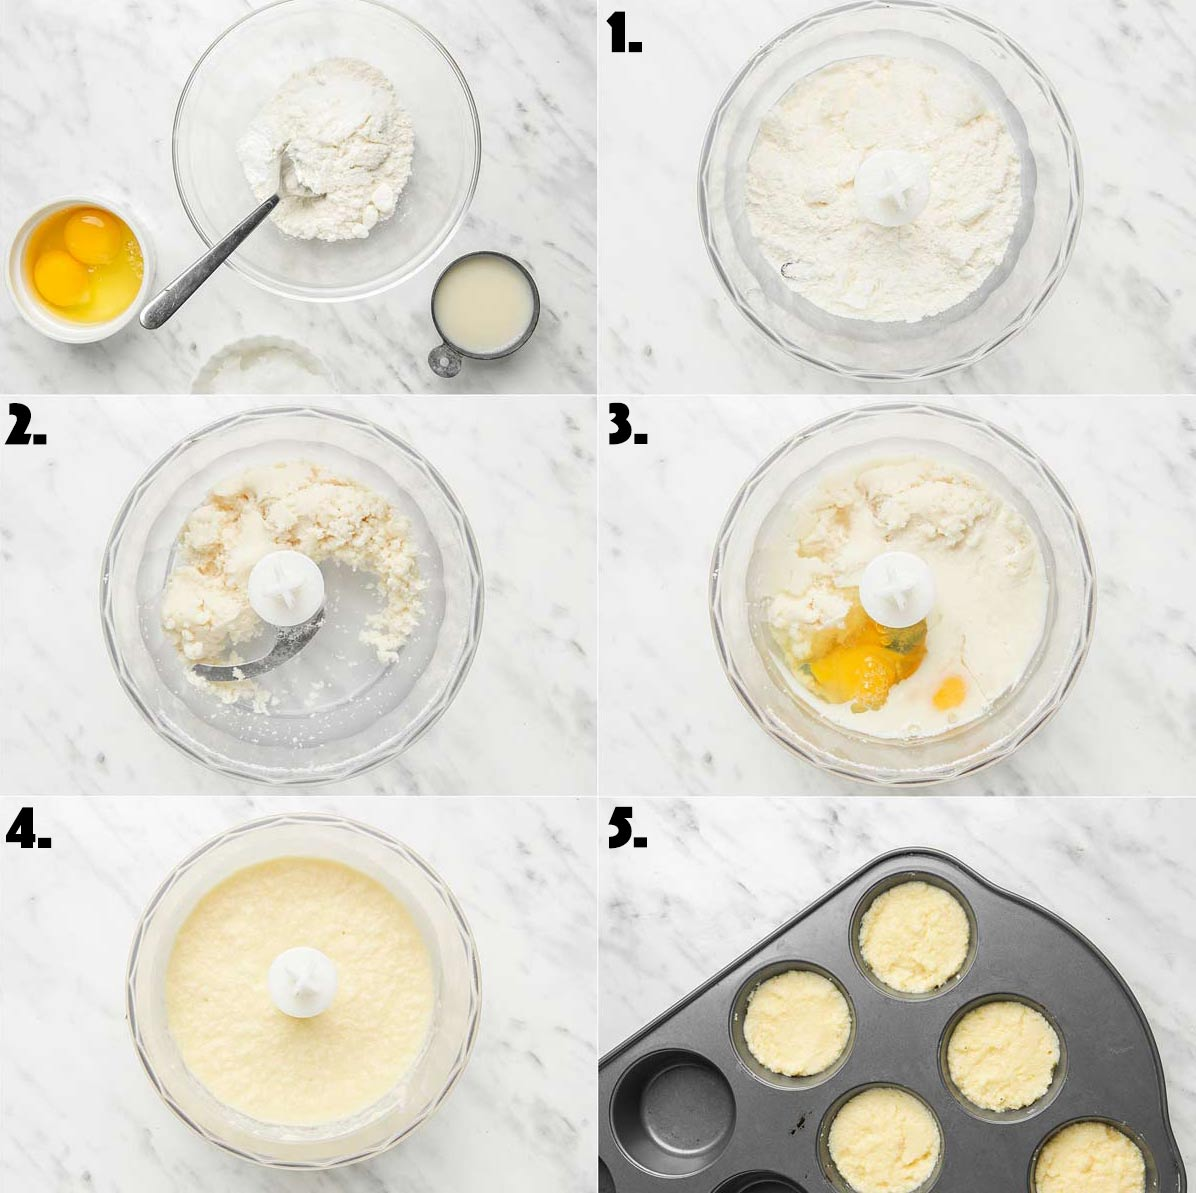 Step by step instructions for how to prepare the coconut flour biscuit batter